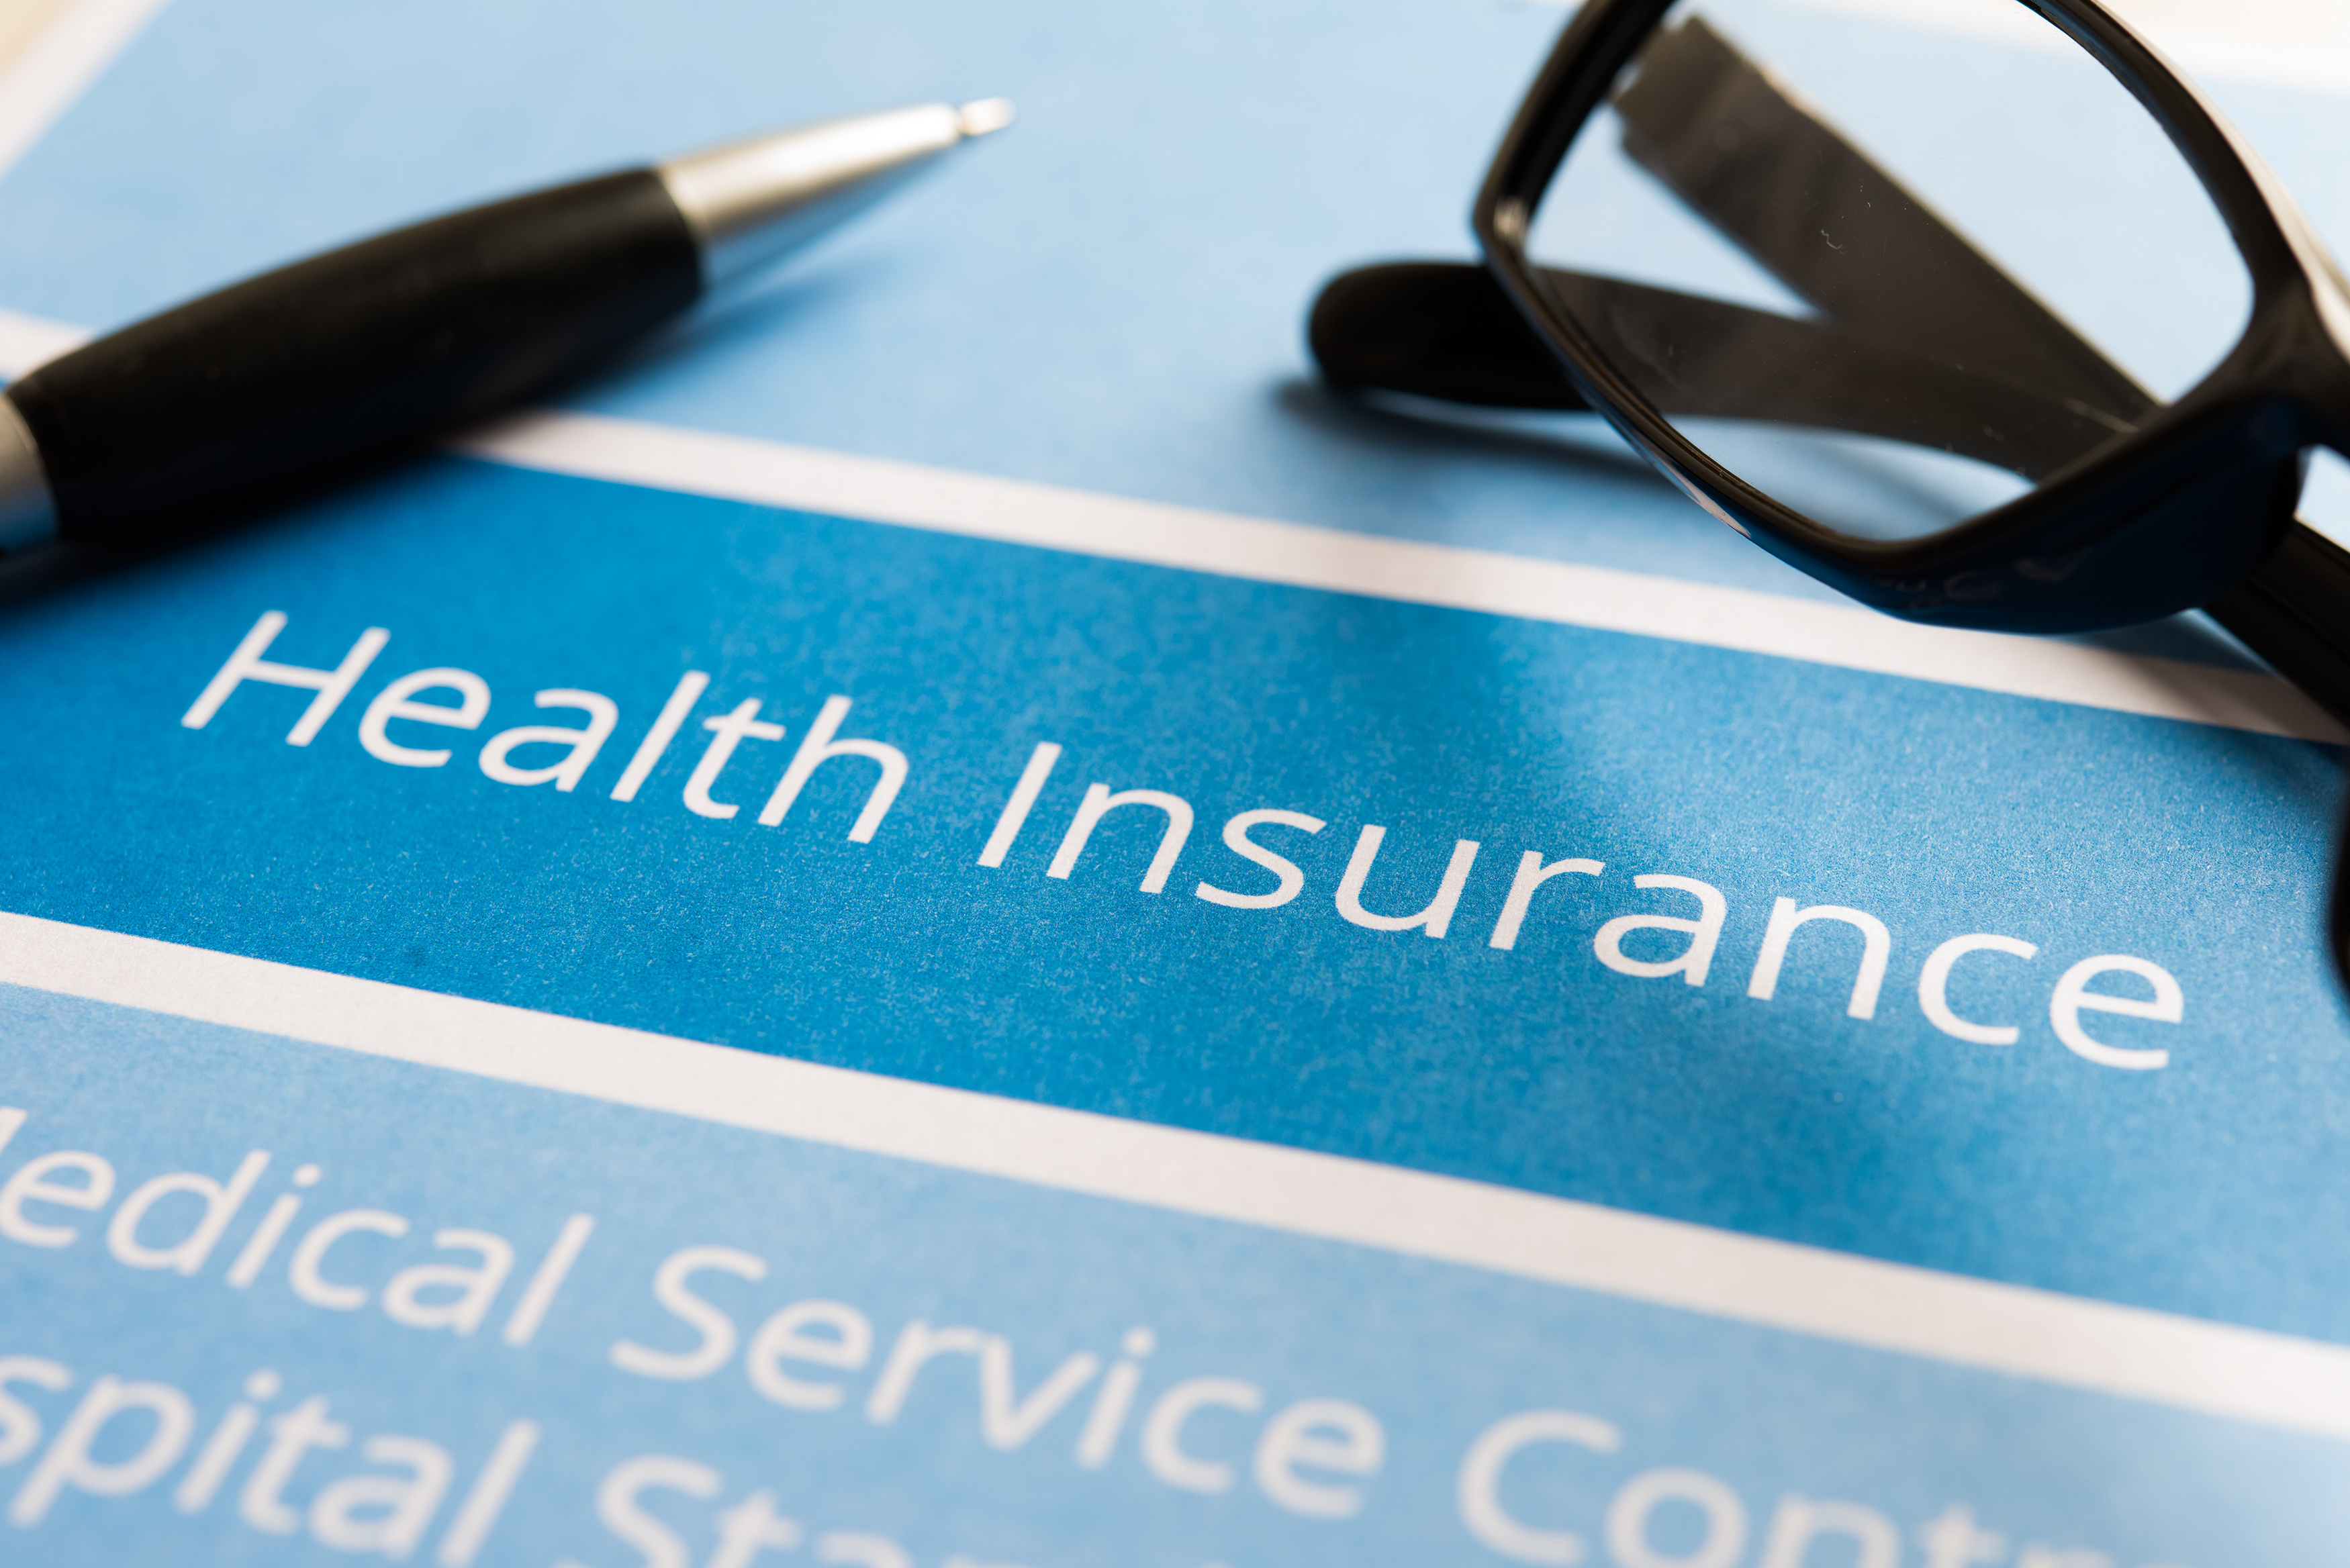 COVID-19 Impact on Health Insurance Sector in Healthcare Industry